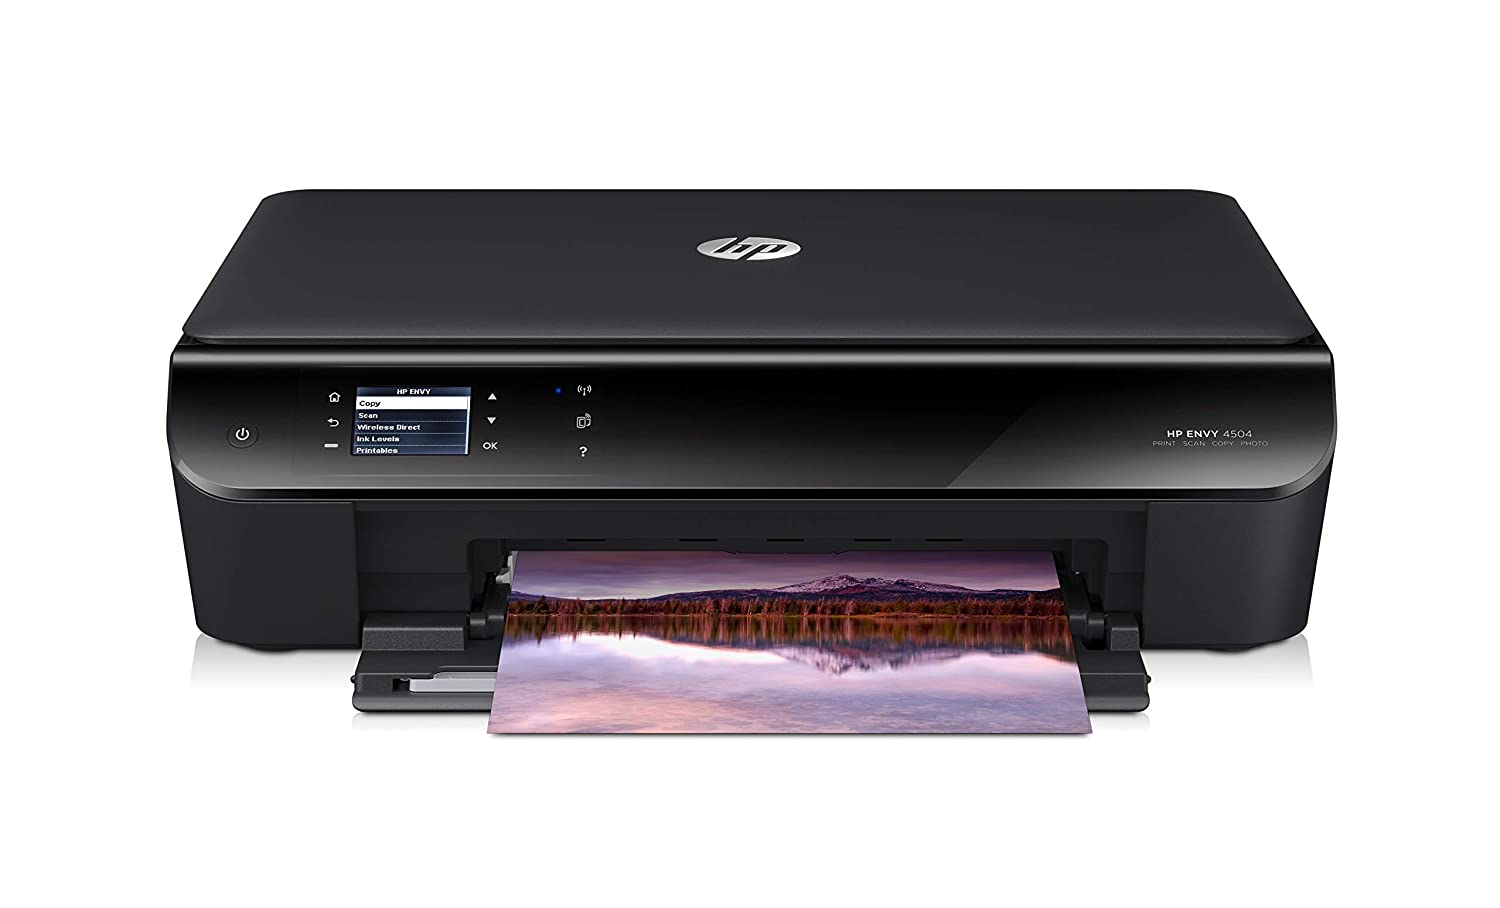 HP ENVY 4504 e-All-in-One Printer - Impresora multifunción ...